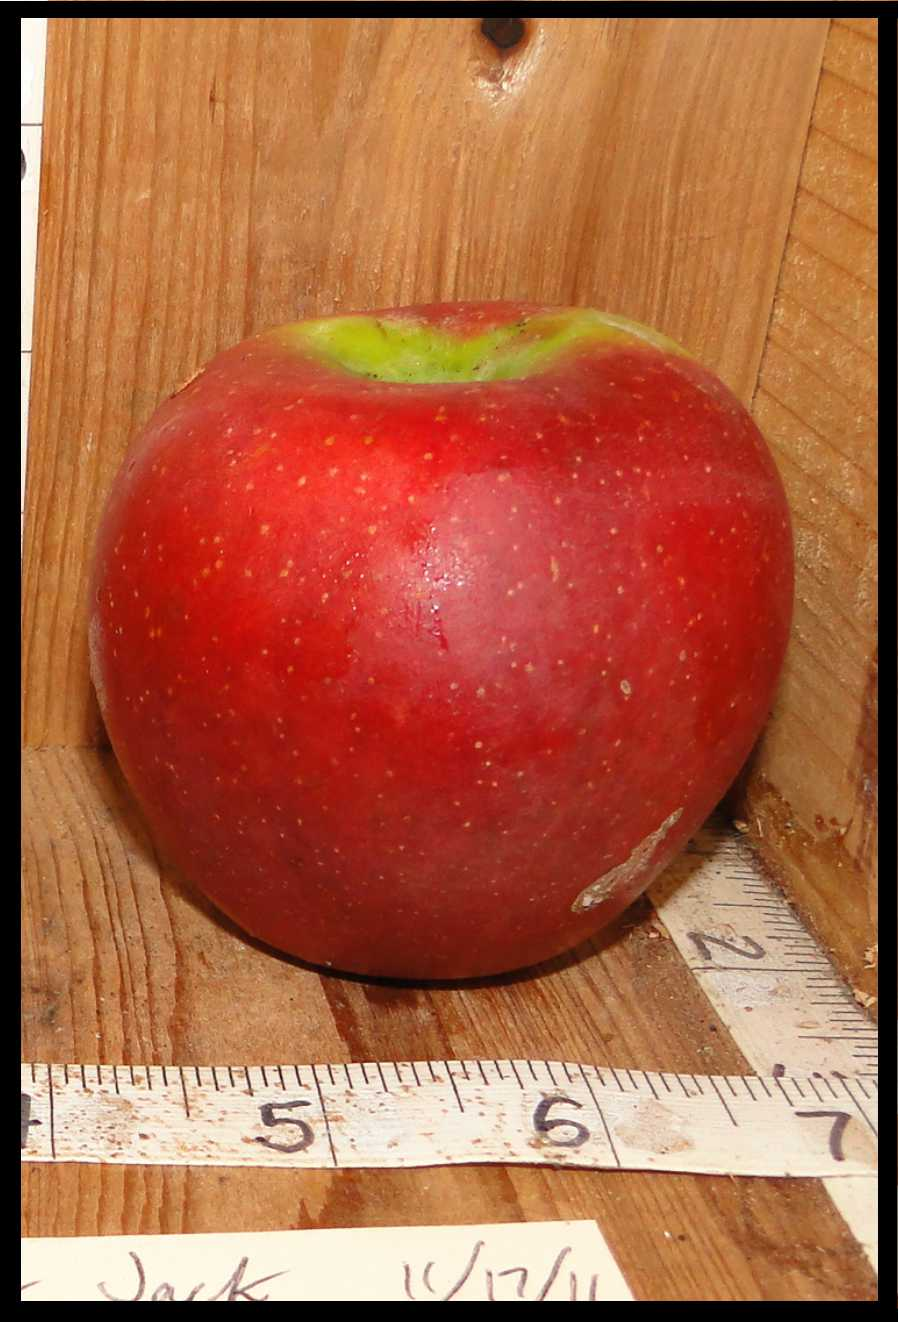 red apple with small white spots and green skin near the stem